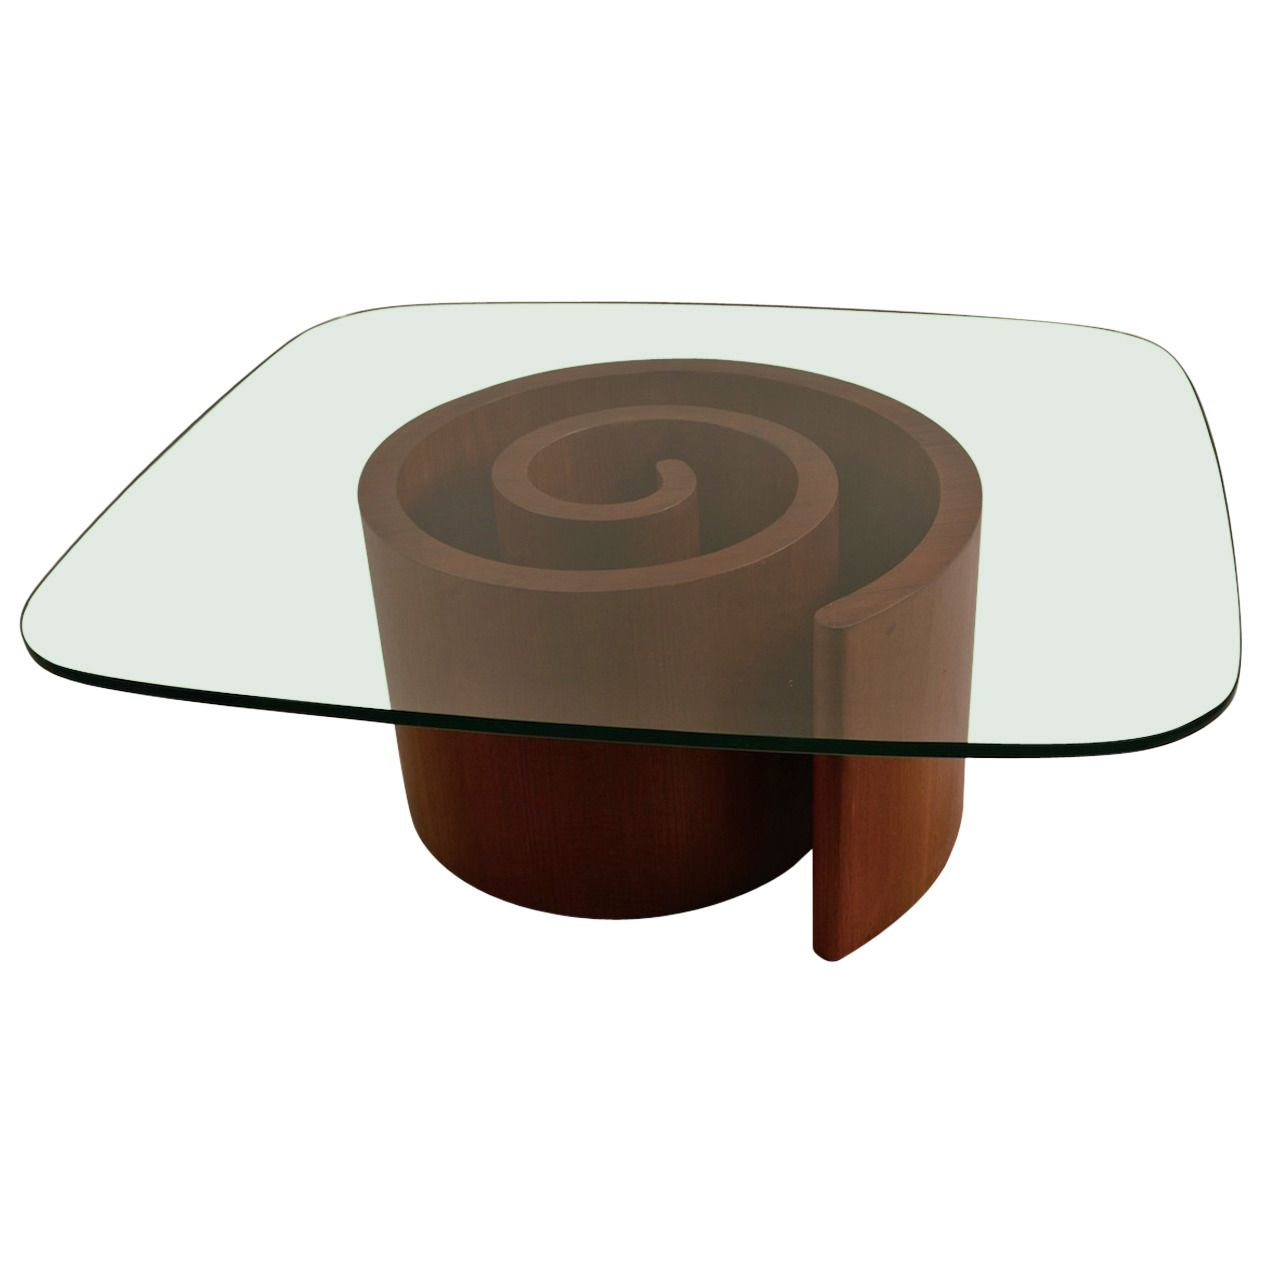 Snail Table by Kagan | See more antique and modern Coffee and Cocktail Tables at https://www.1stdibs.com/furniture/tables/coffee-tables-cocktail-tables